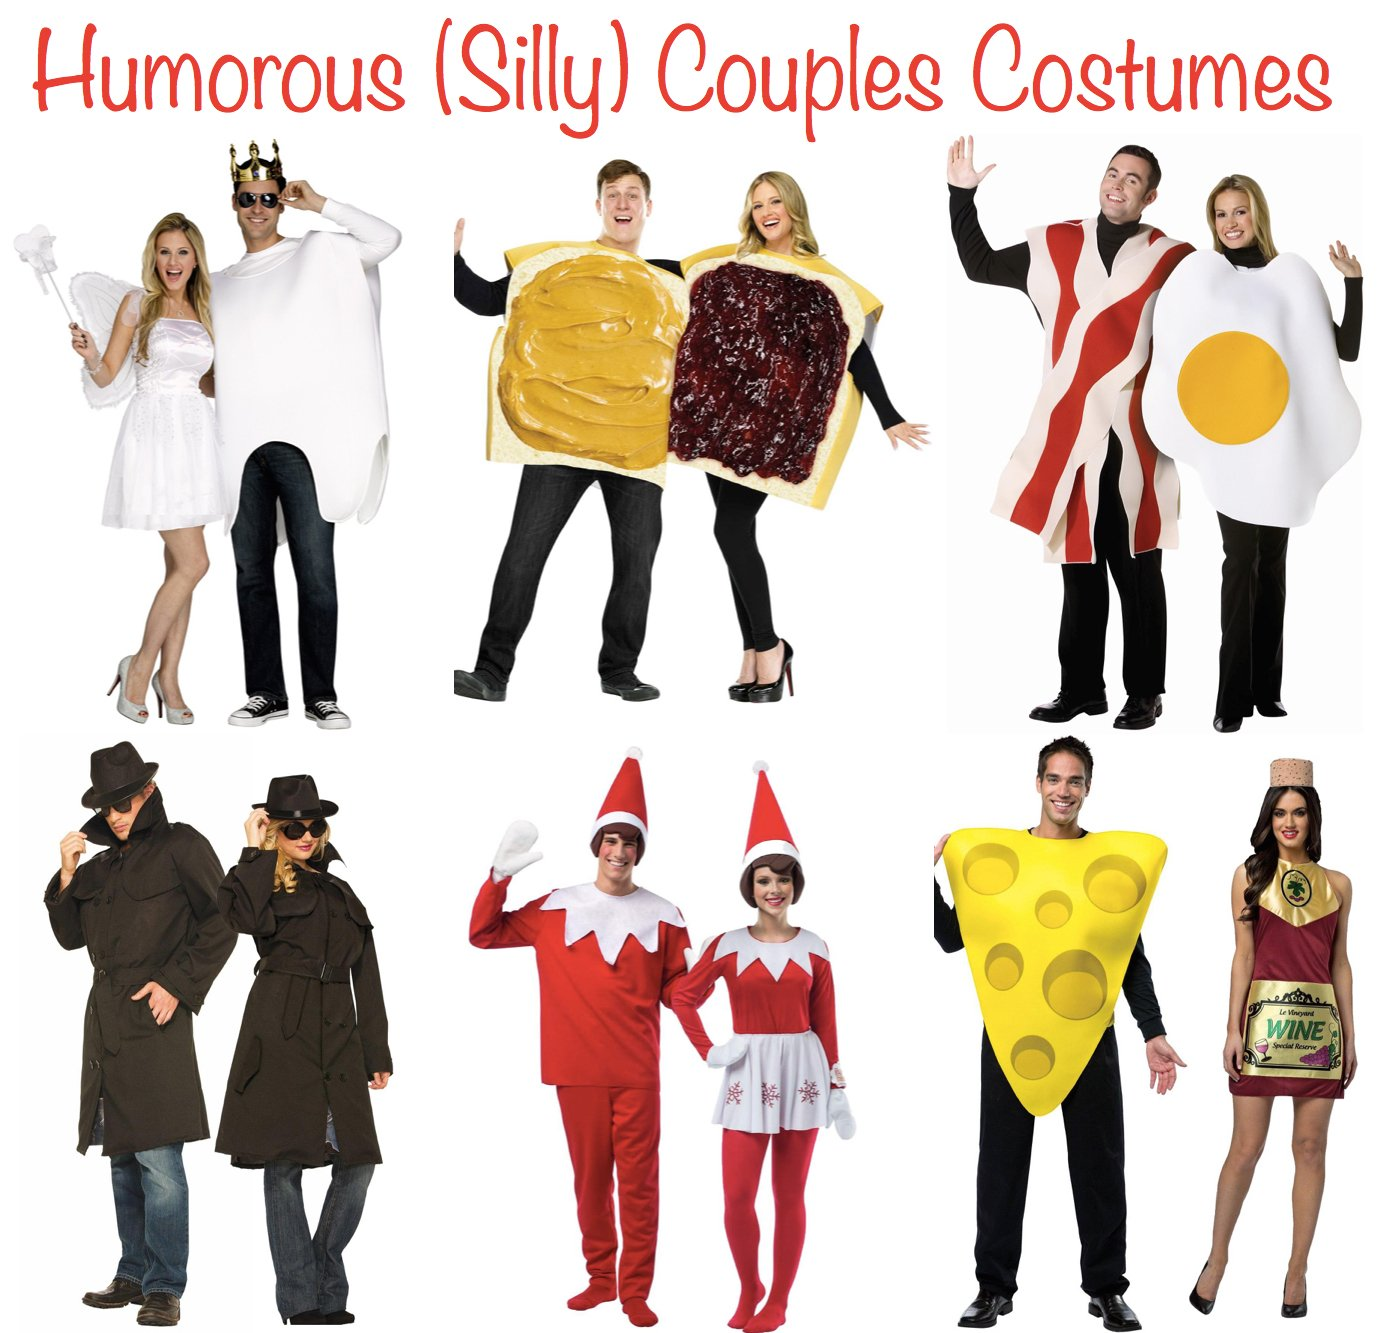 Humorous Silly Couples Costumes